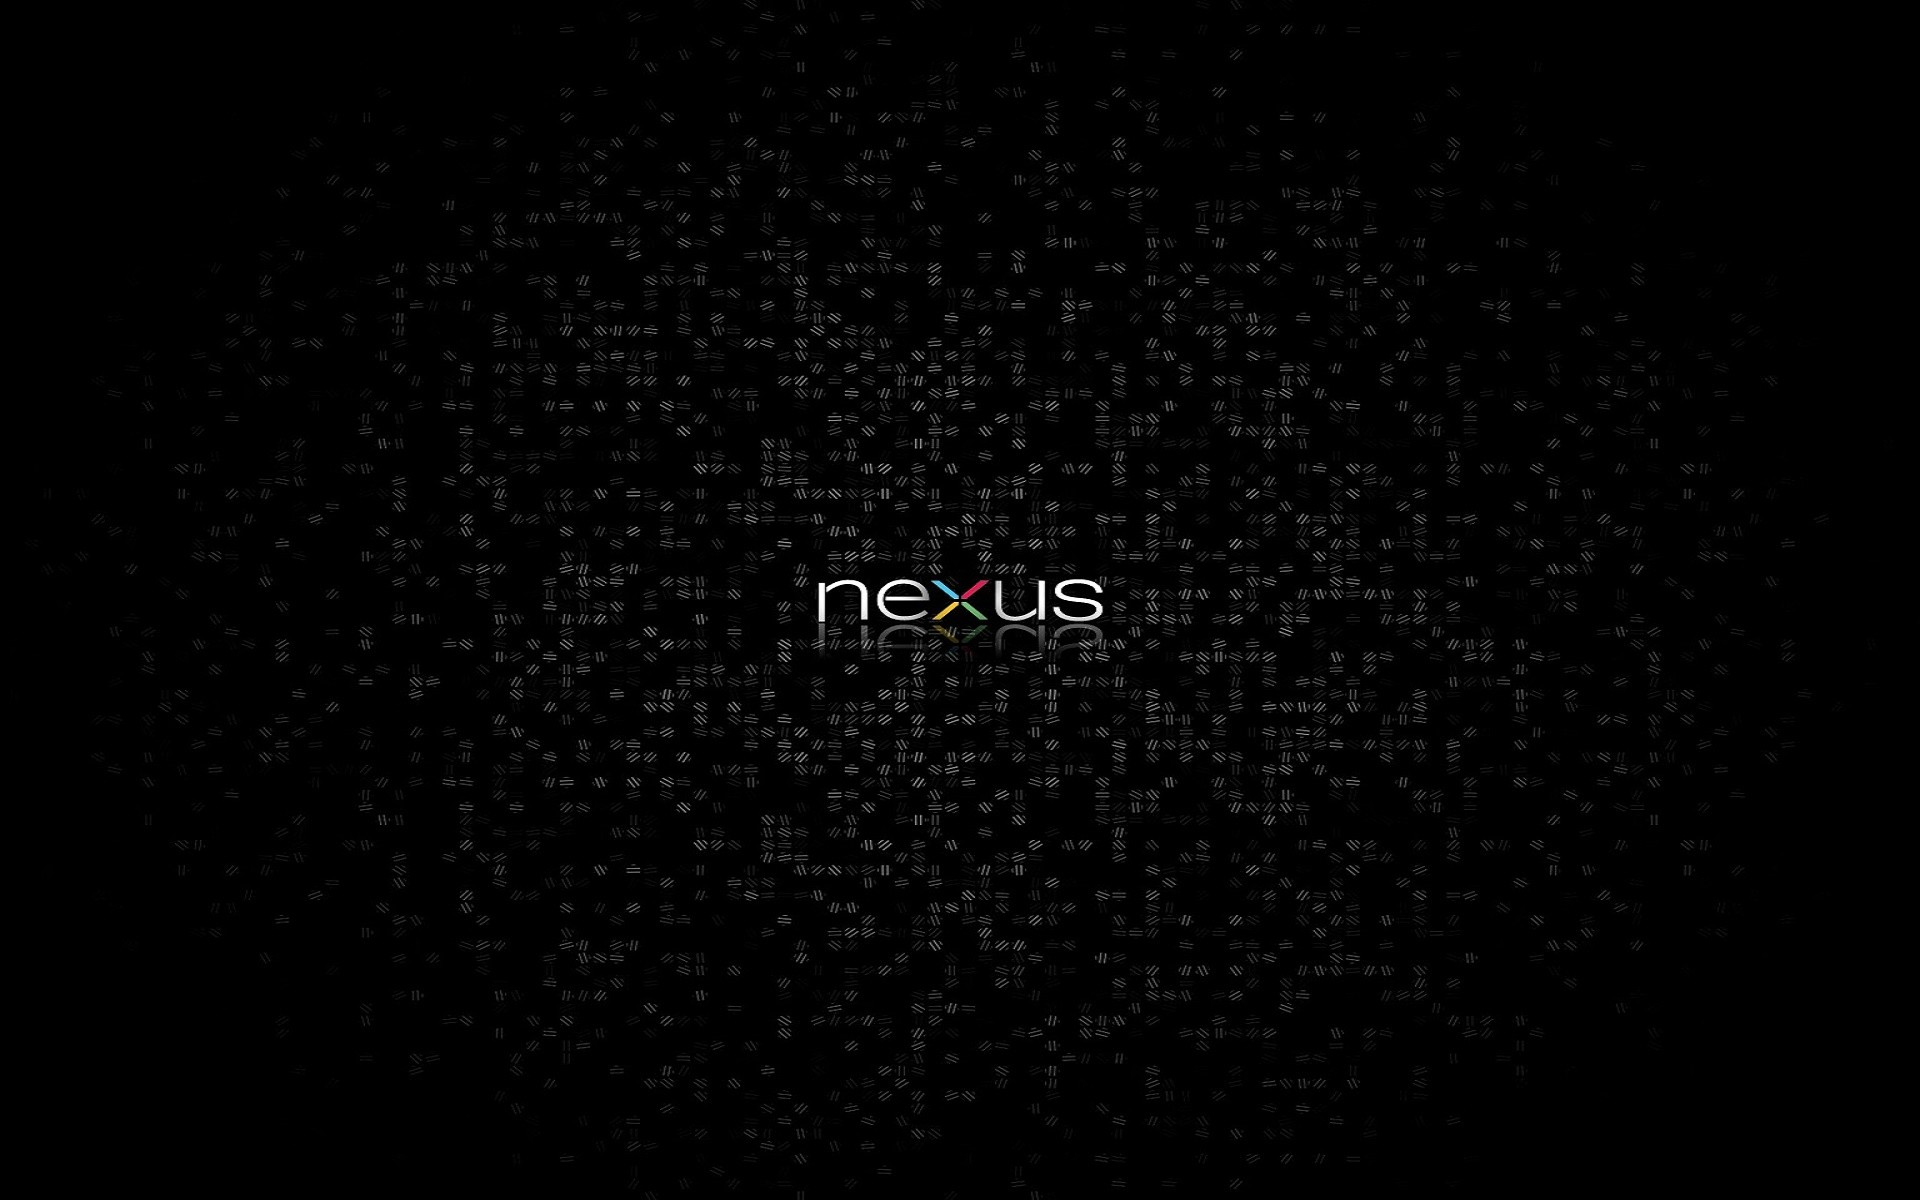 1920x1200 logo nexus 6 wallpapers hd background wallpapers free amazing tablet smart  phone 4k high definition 1920